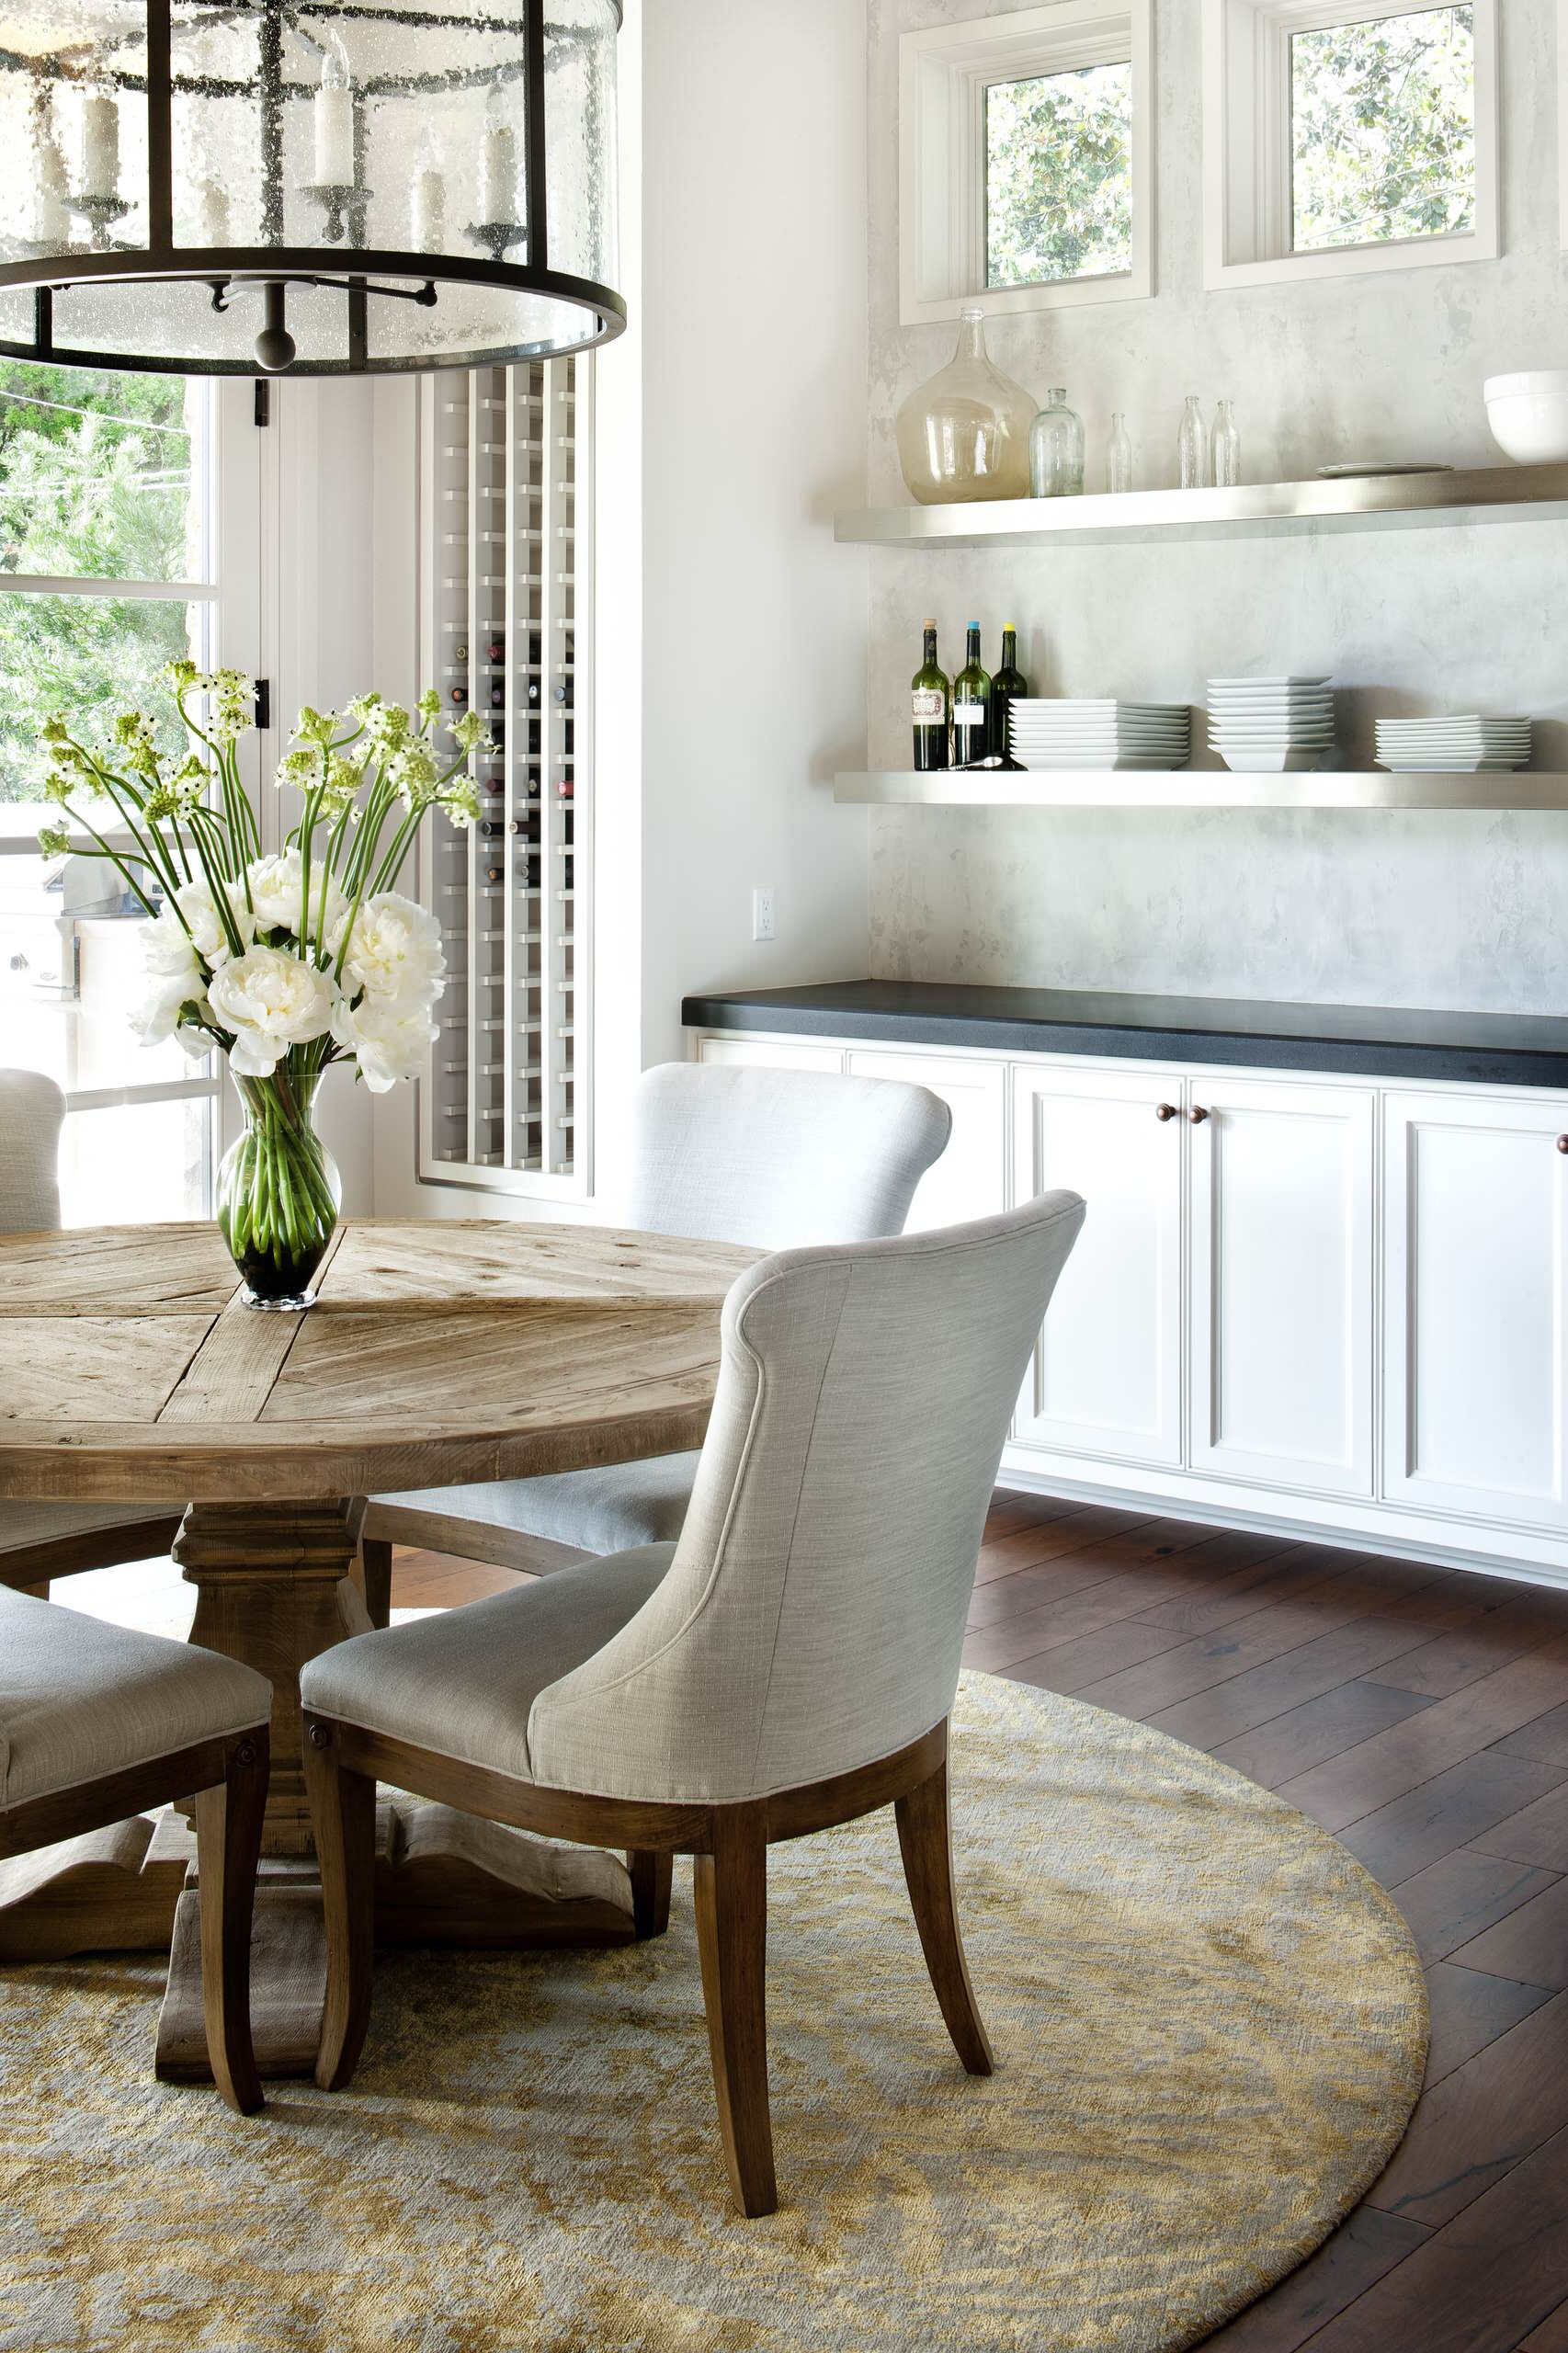 75 Beautiful Rustic Dining Room Pictures Ideas February 2021 Houzz